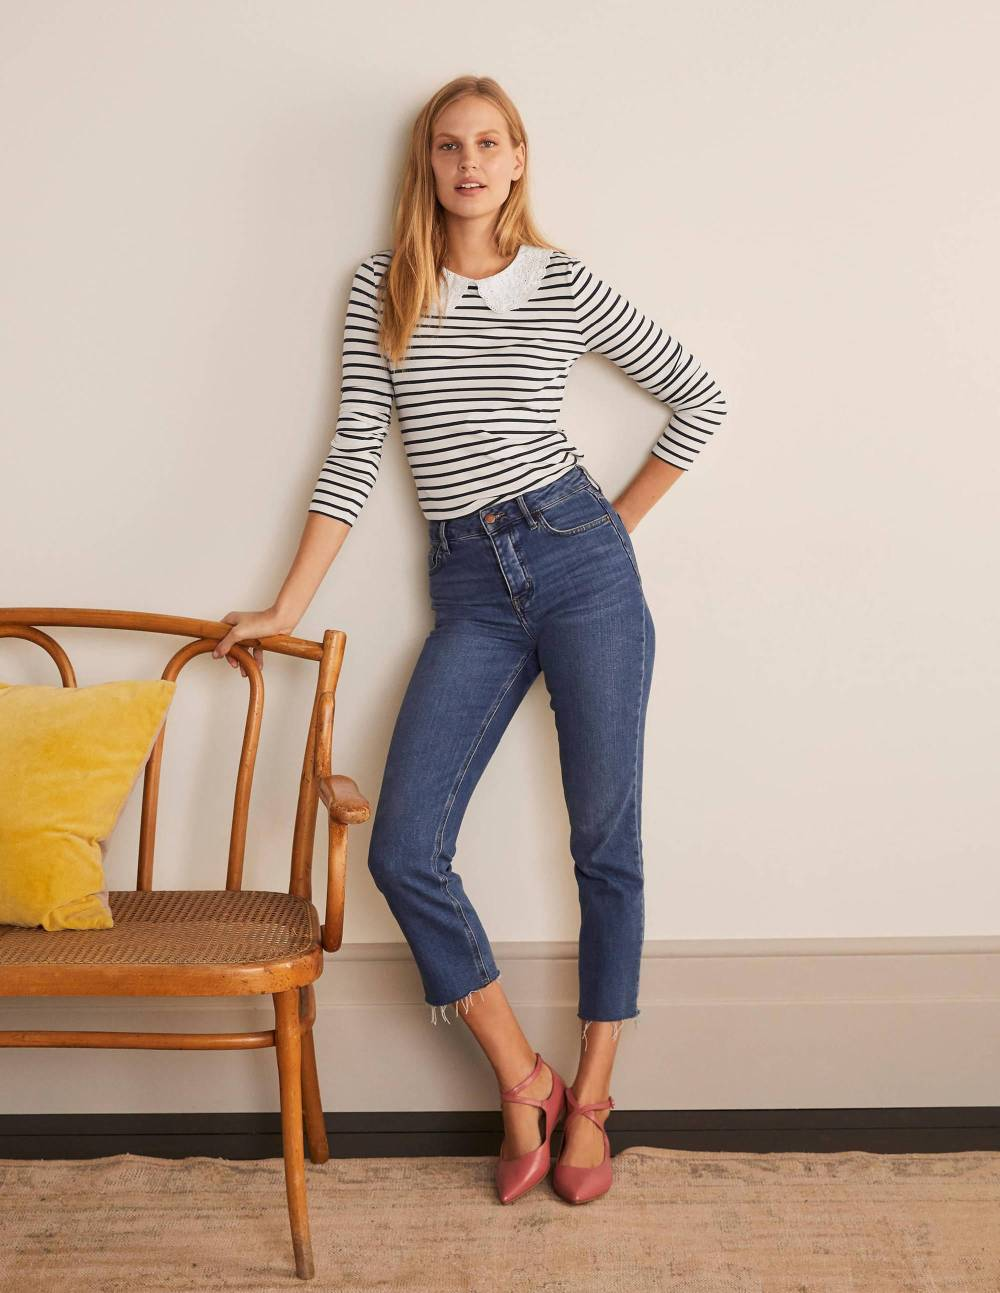 boden beautiful timeless jersey outfits